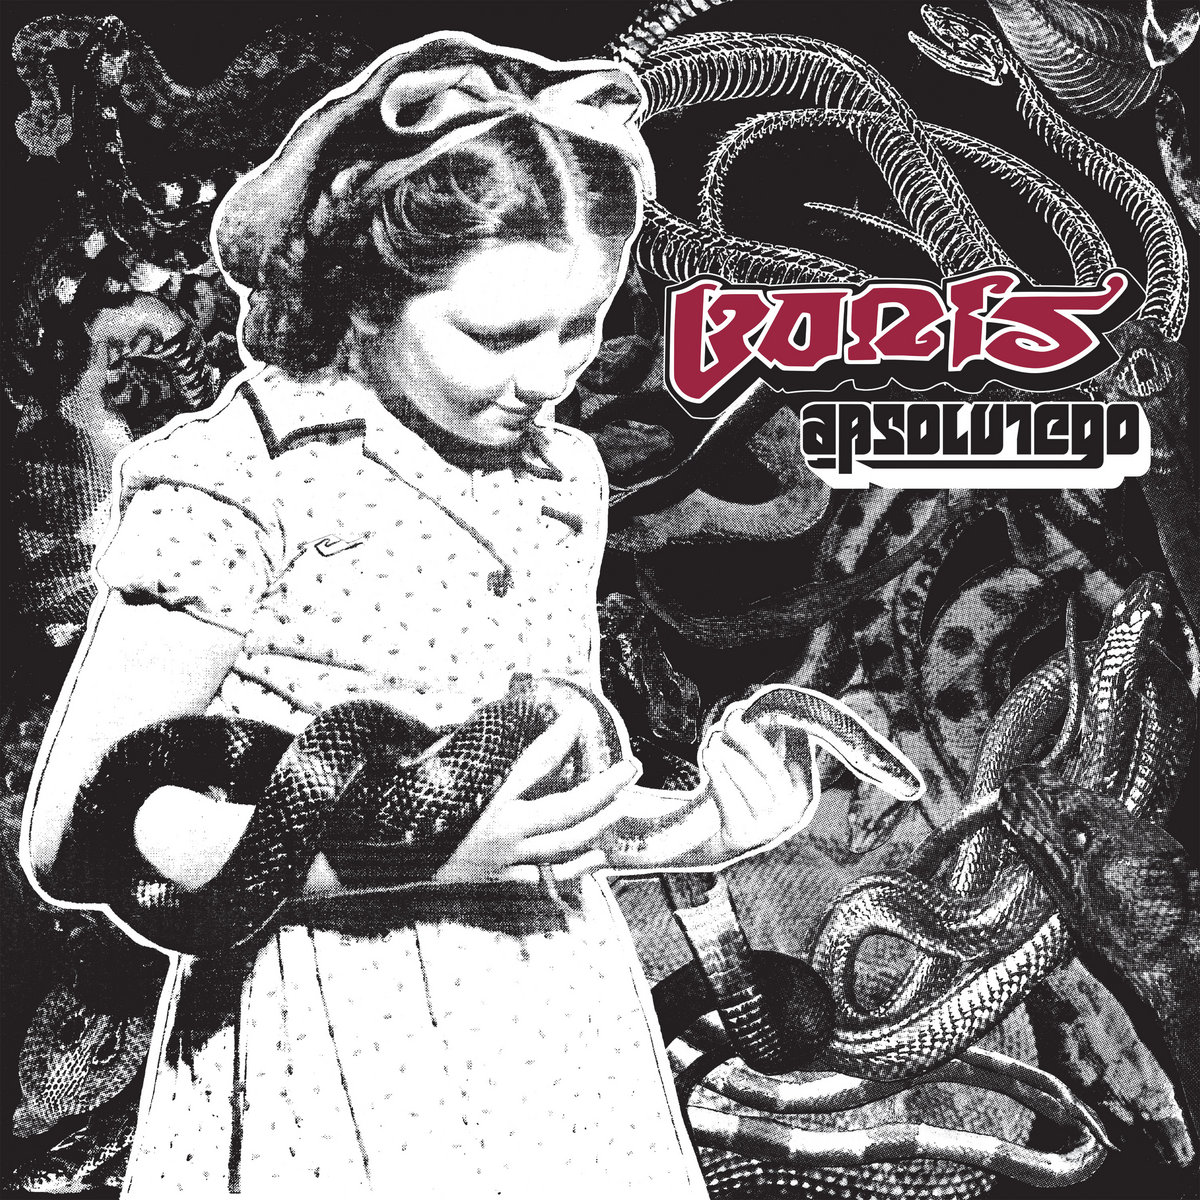 Boris - Absolutego [LTD 2xLP] (Opaque Red Vinyl)